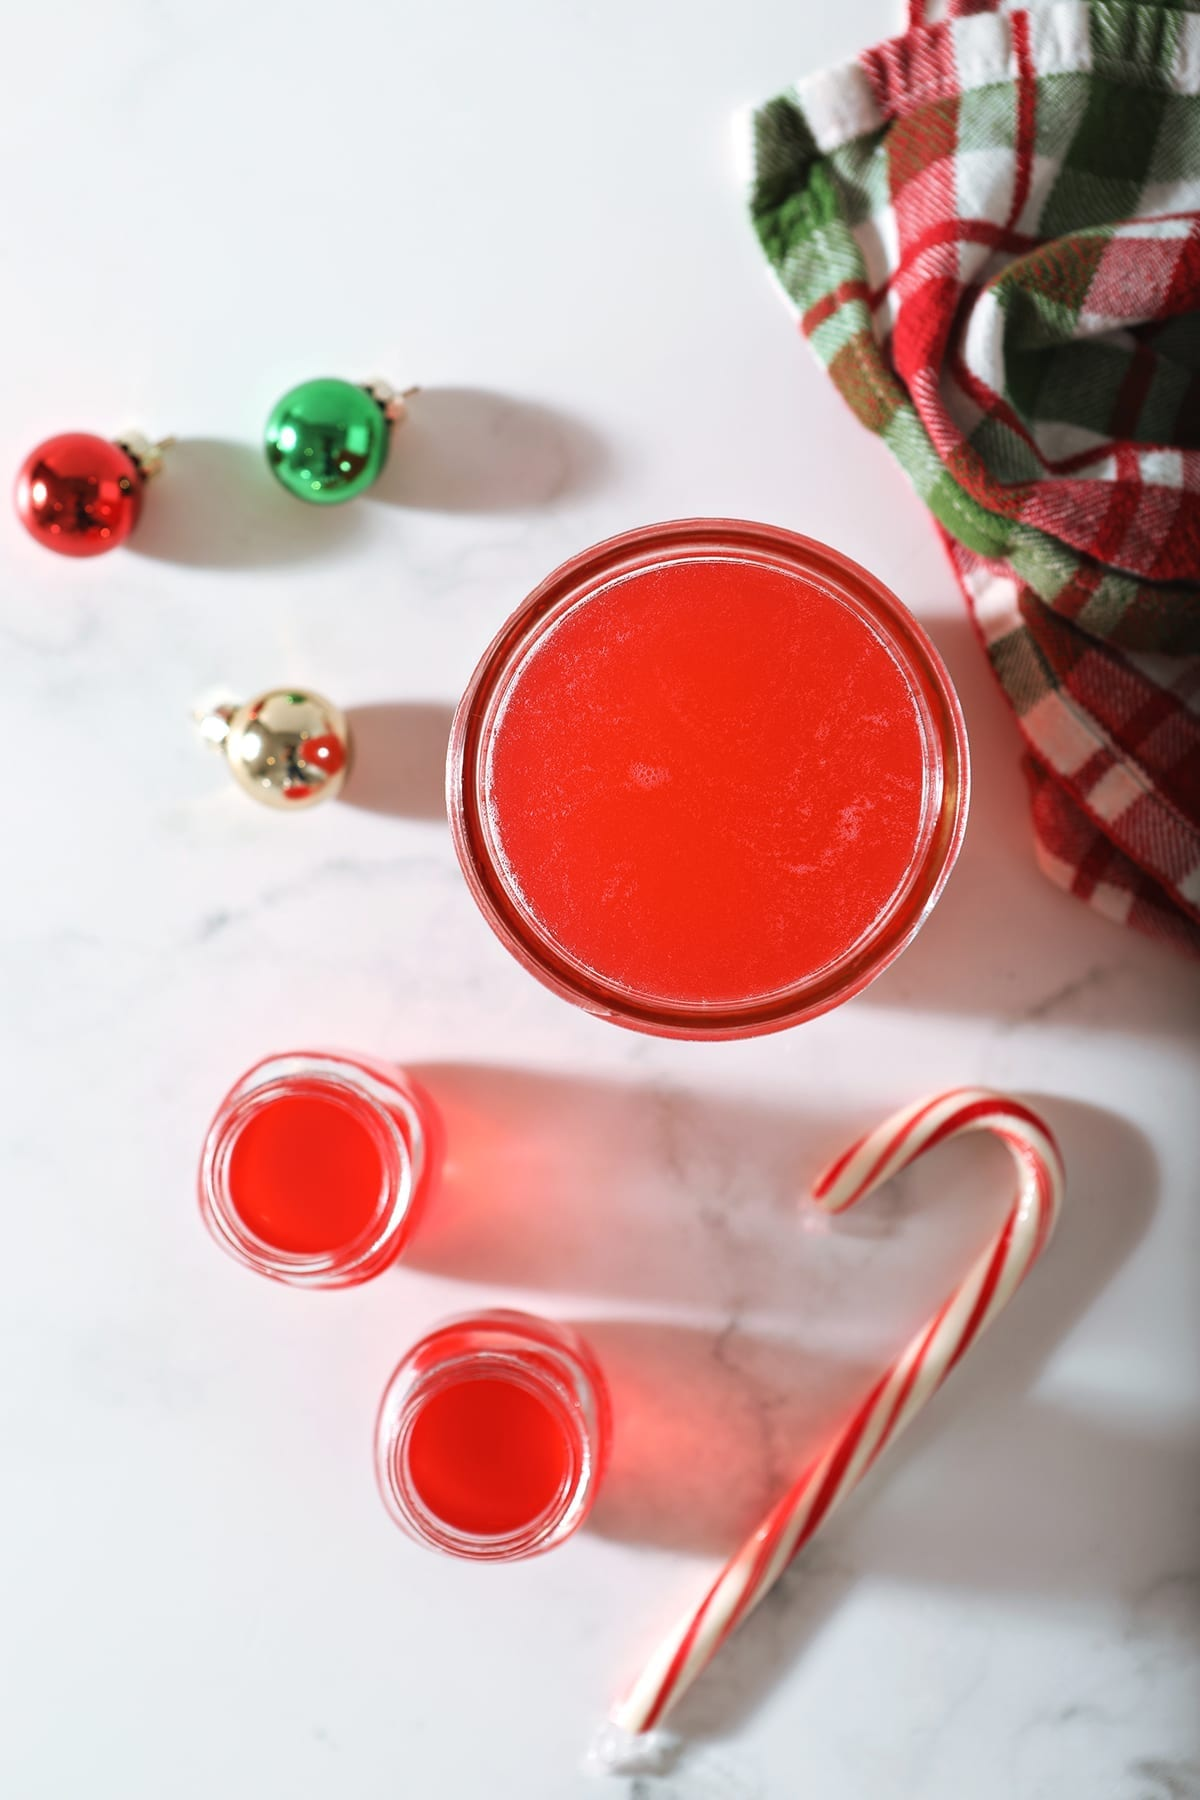 Two shot glasses of peppermint vodka sit next to a mason jar full of the candy cane-infused vodka with glass ornaments, a Christmas-colored plaid towel and a candy cane on marble